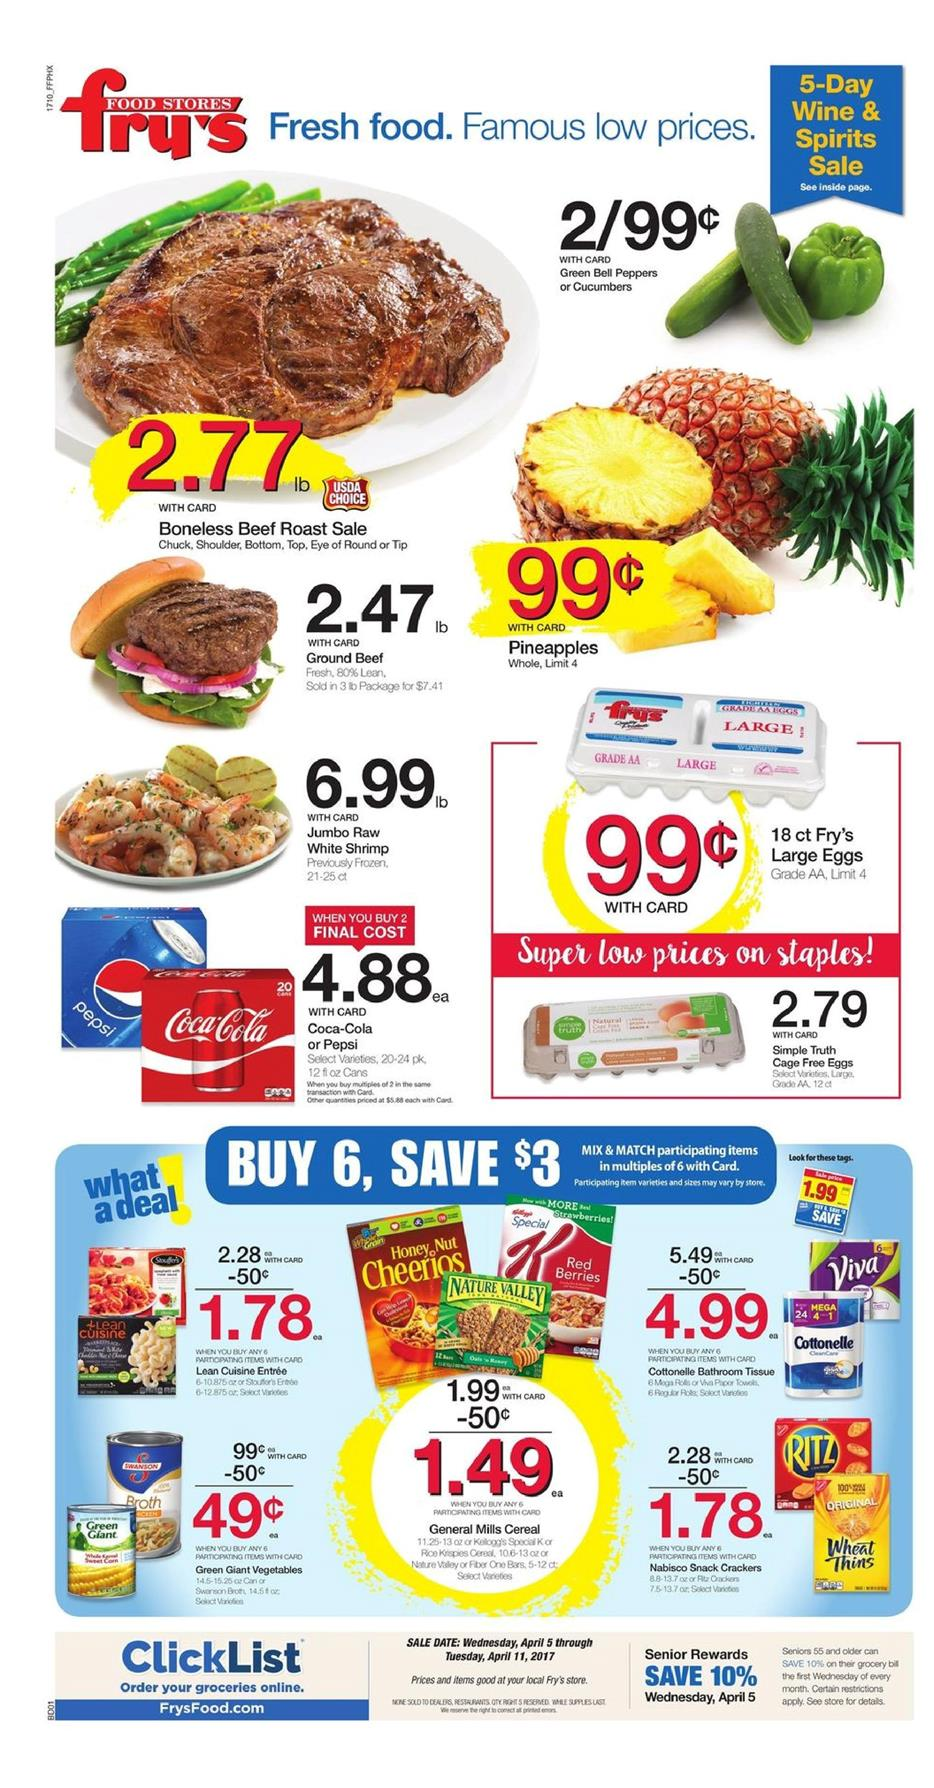 Complete coverage of Fry's Black Friday Ads & Fry's Black Friday deals info/5(12).